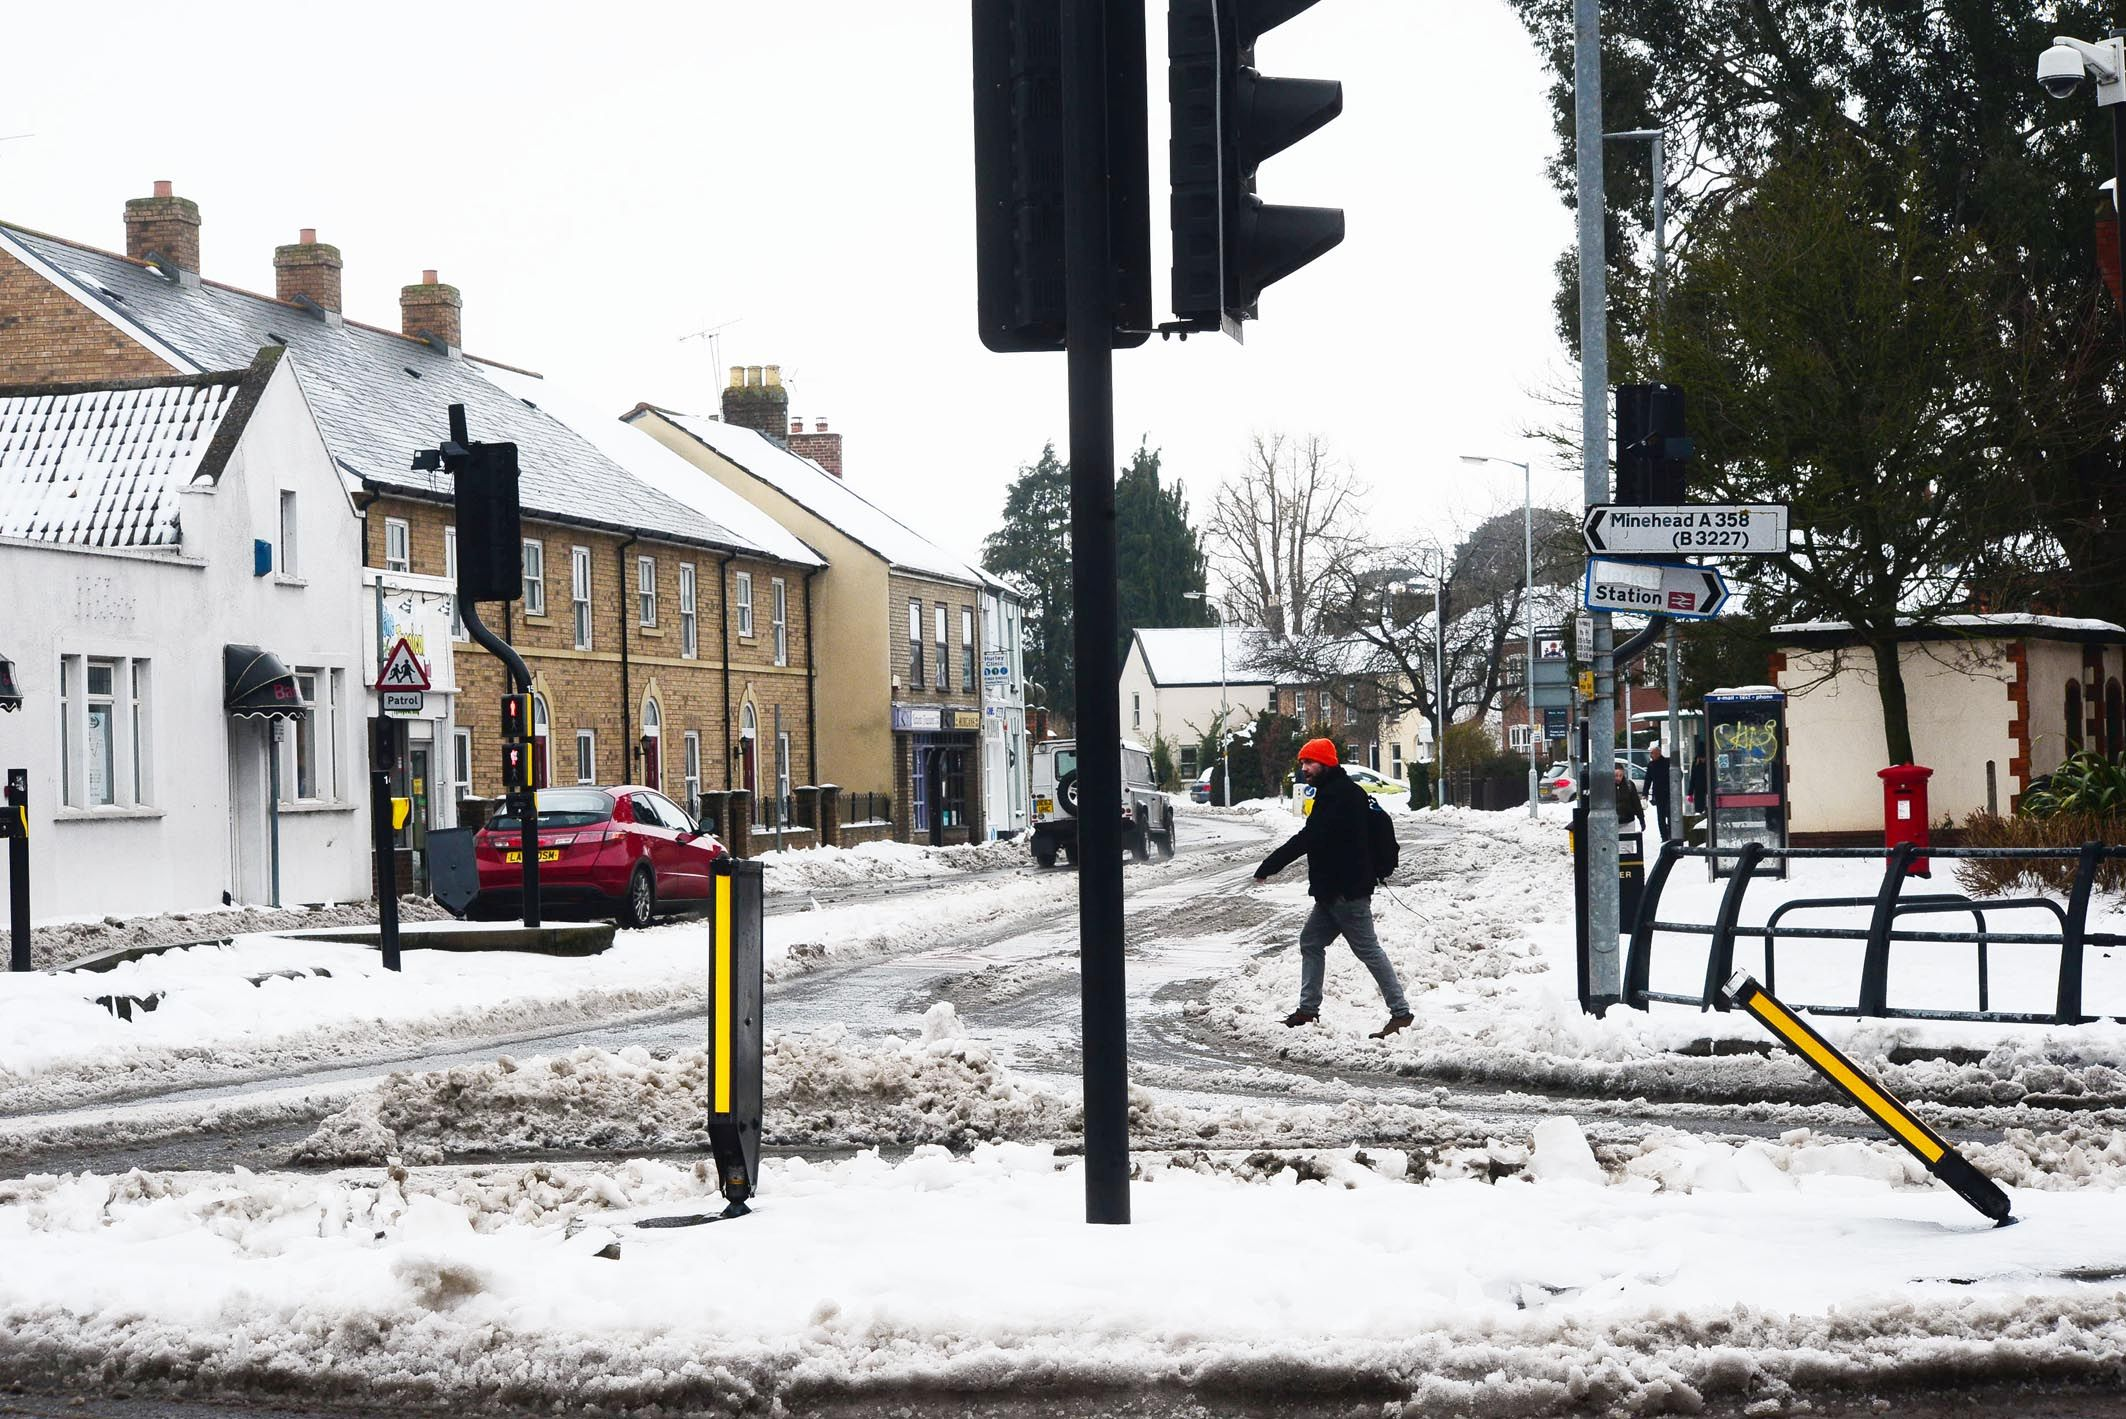 LAST YEAR: Snow in Staplegrove Road, Taunton, in March 2018